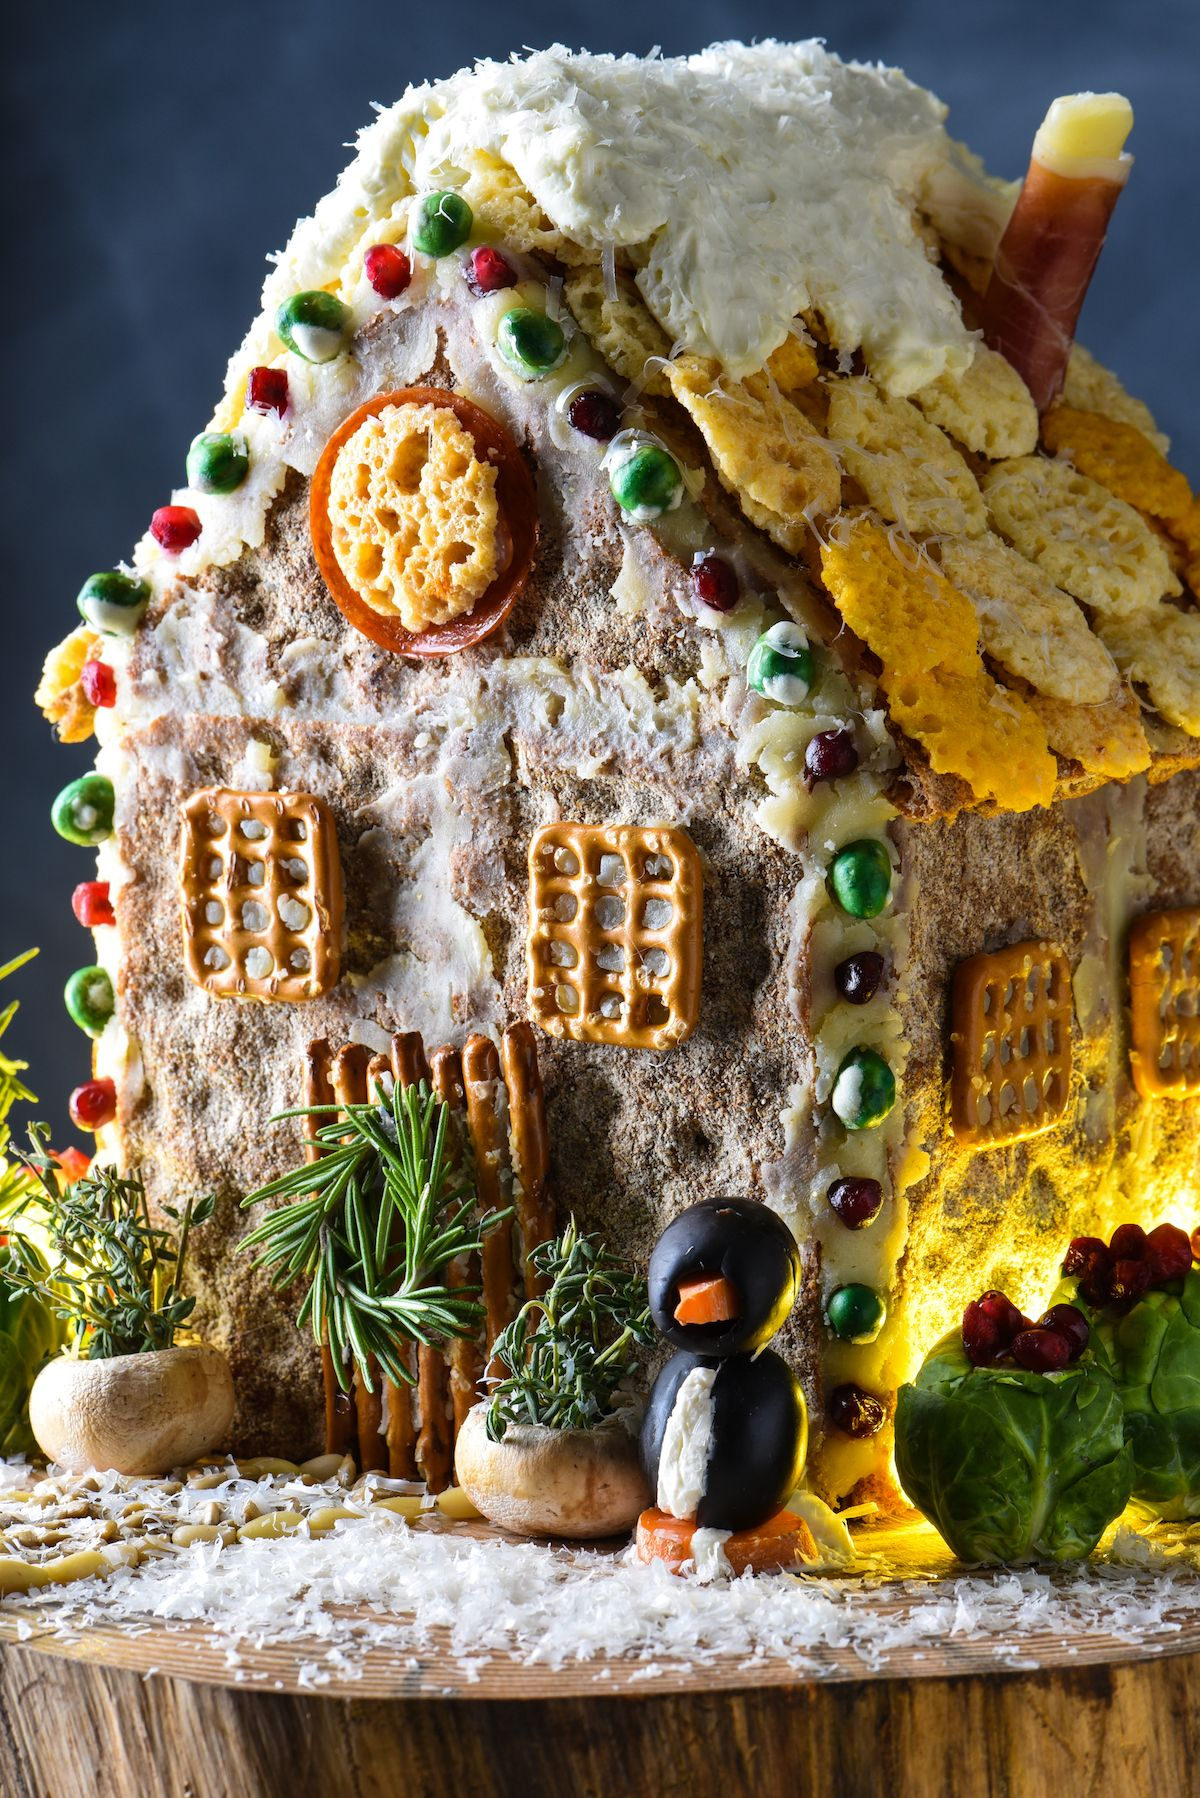 Savory Gingerbread House (Cheese & Cracker House in 2020